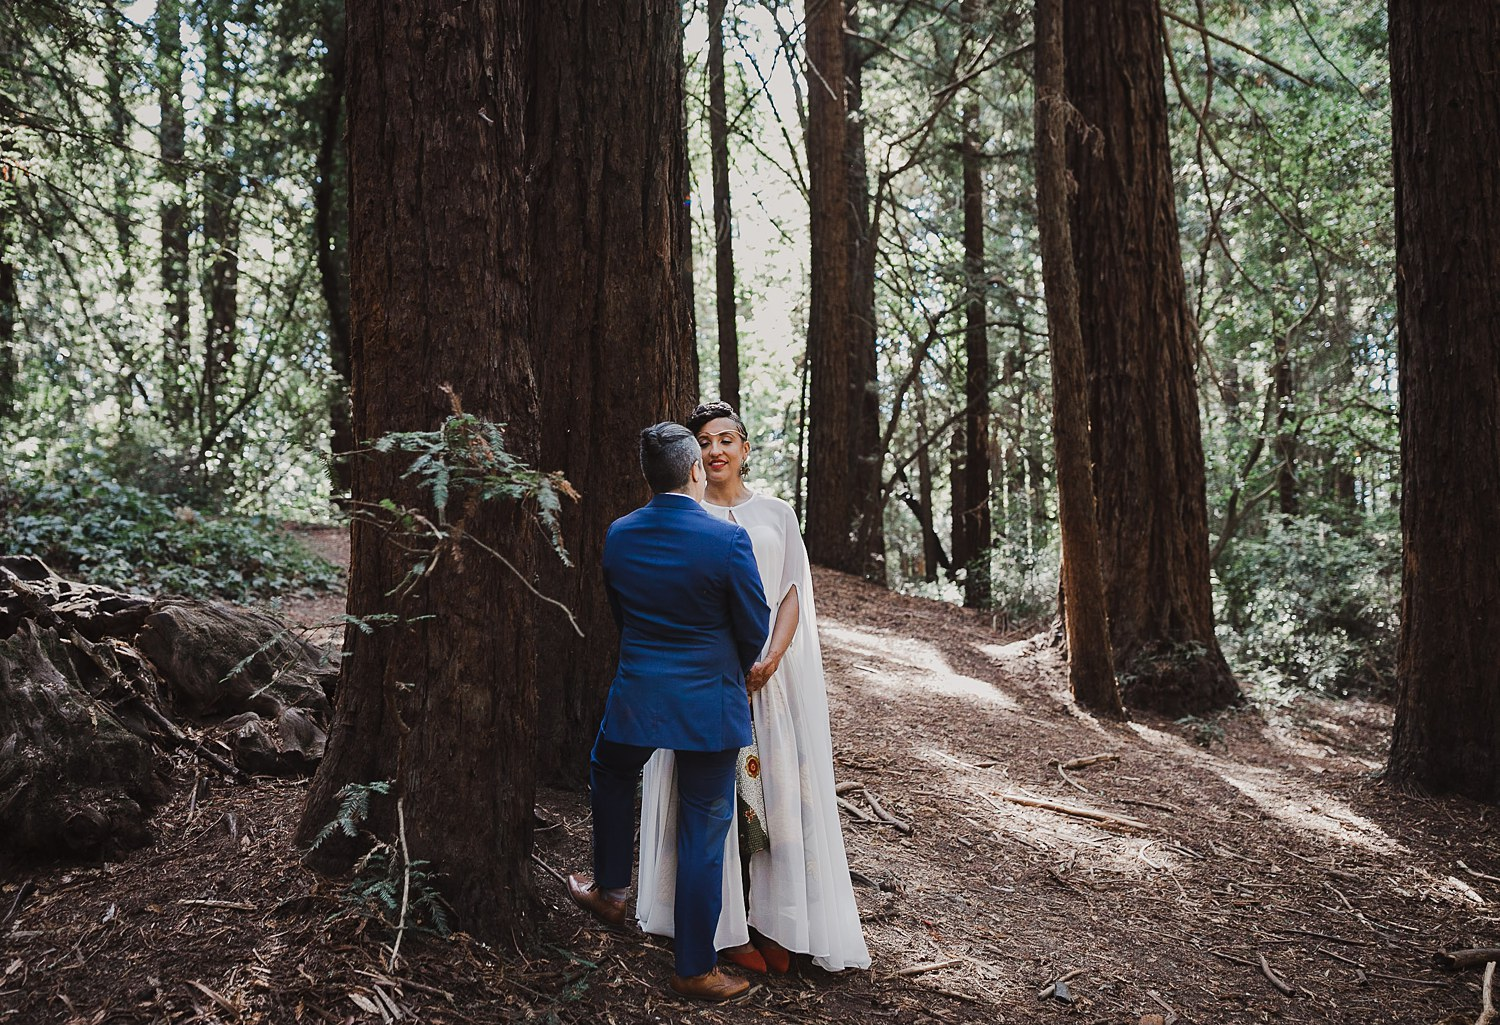 Intimate Oakland wedding photography story in Joaquin Miller Park.